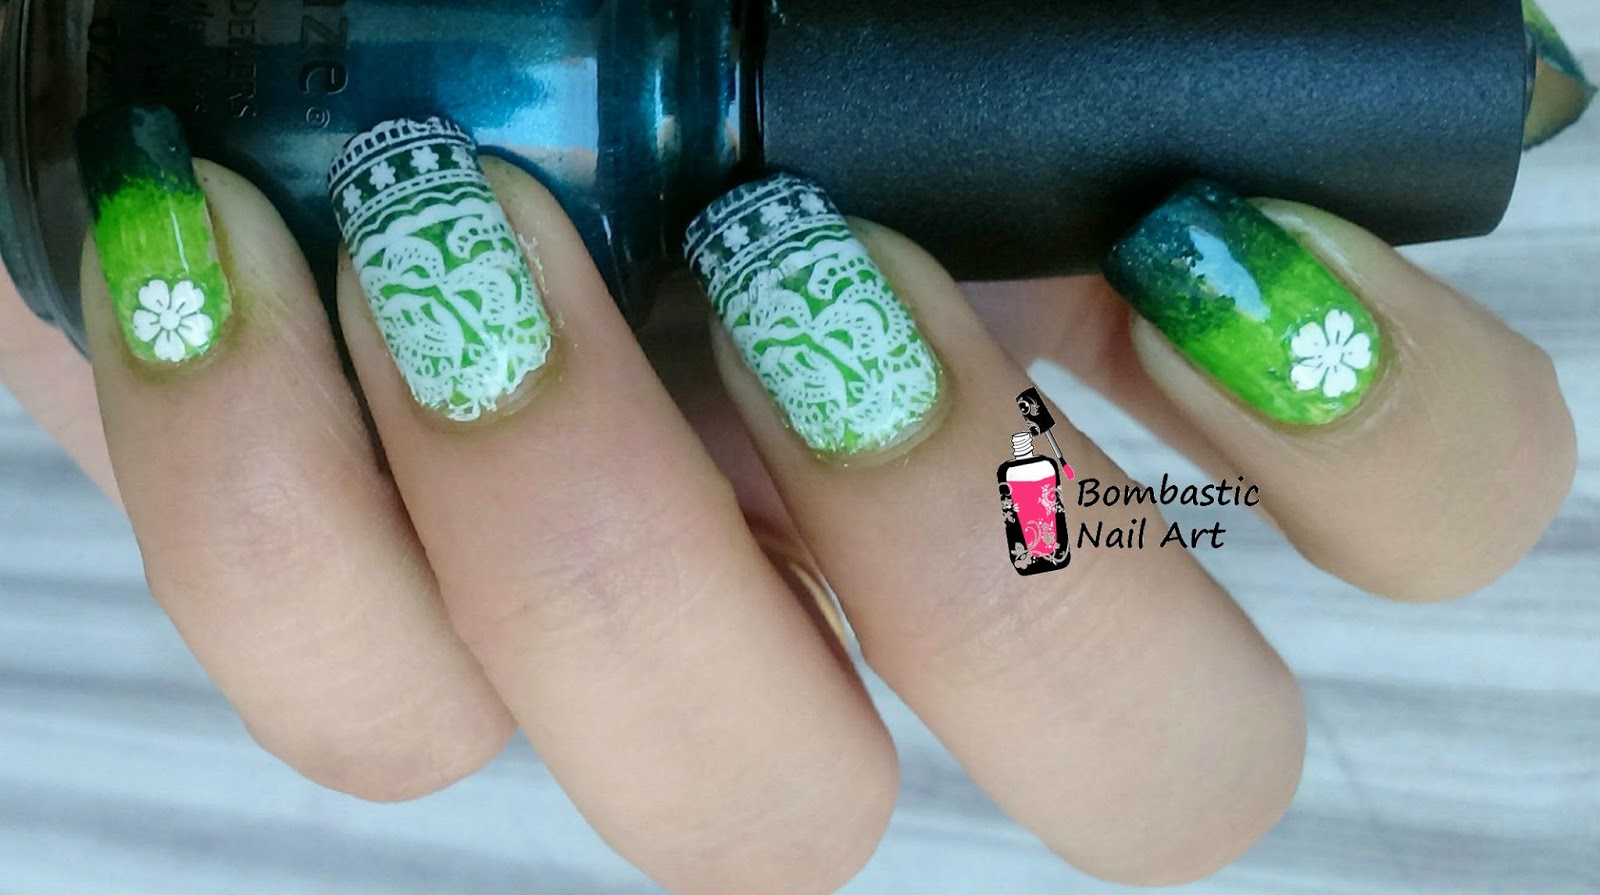 Green Ombre With Full Nail Water Slide Decal Nail Art Bombastic Nail Art